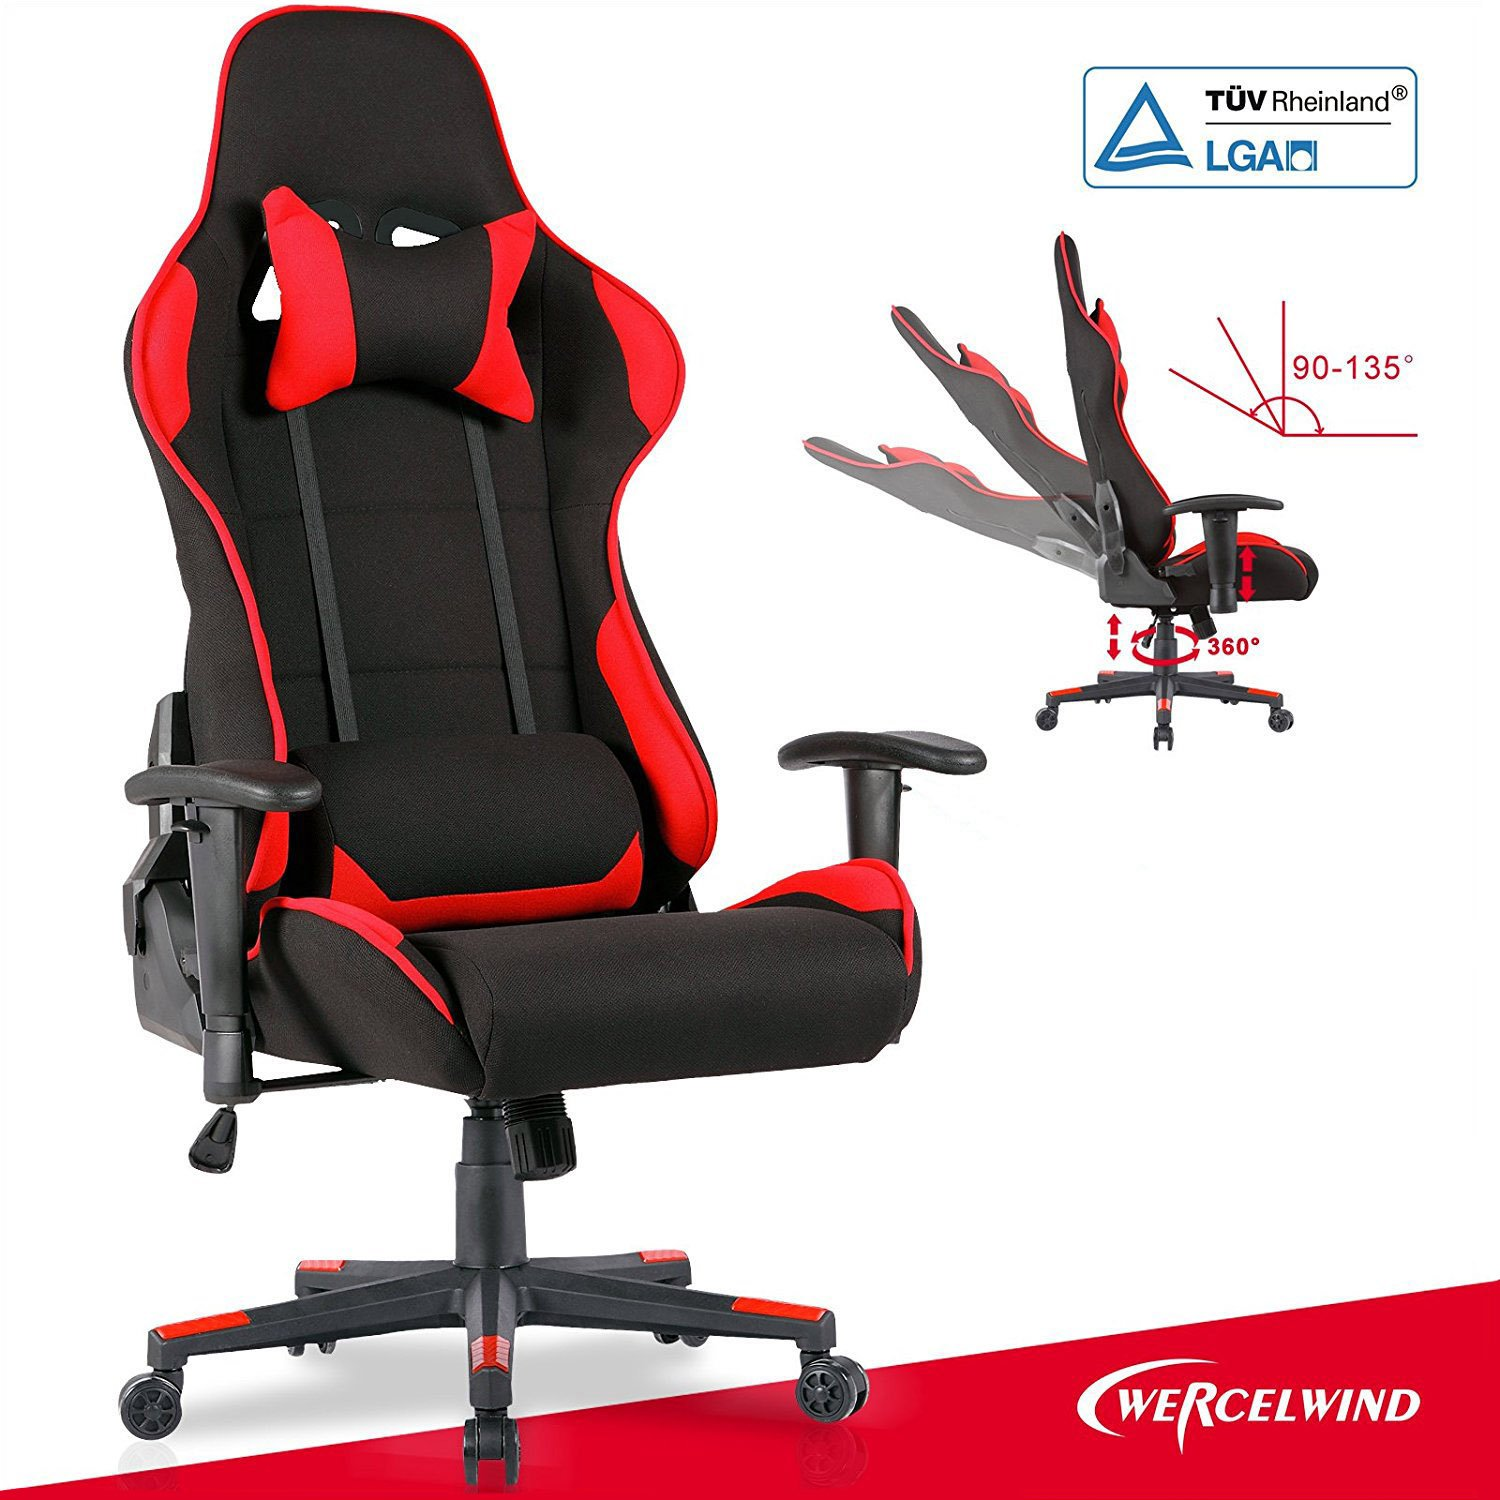 Mecor Gaming Chair, Ergonomic Swivel Racing Chair High-back Adjustable Height Leather Computer Office Chair Executive Headrest Lumbar Support Chair(black-red)